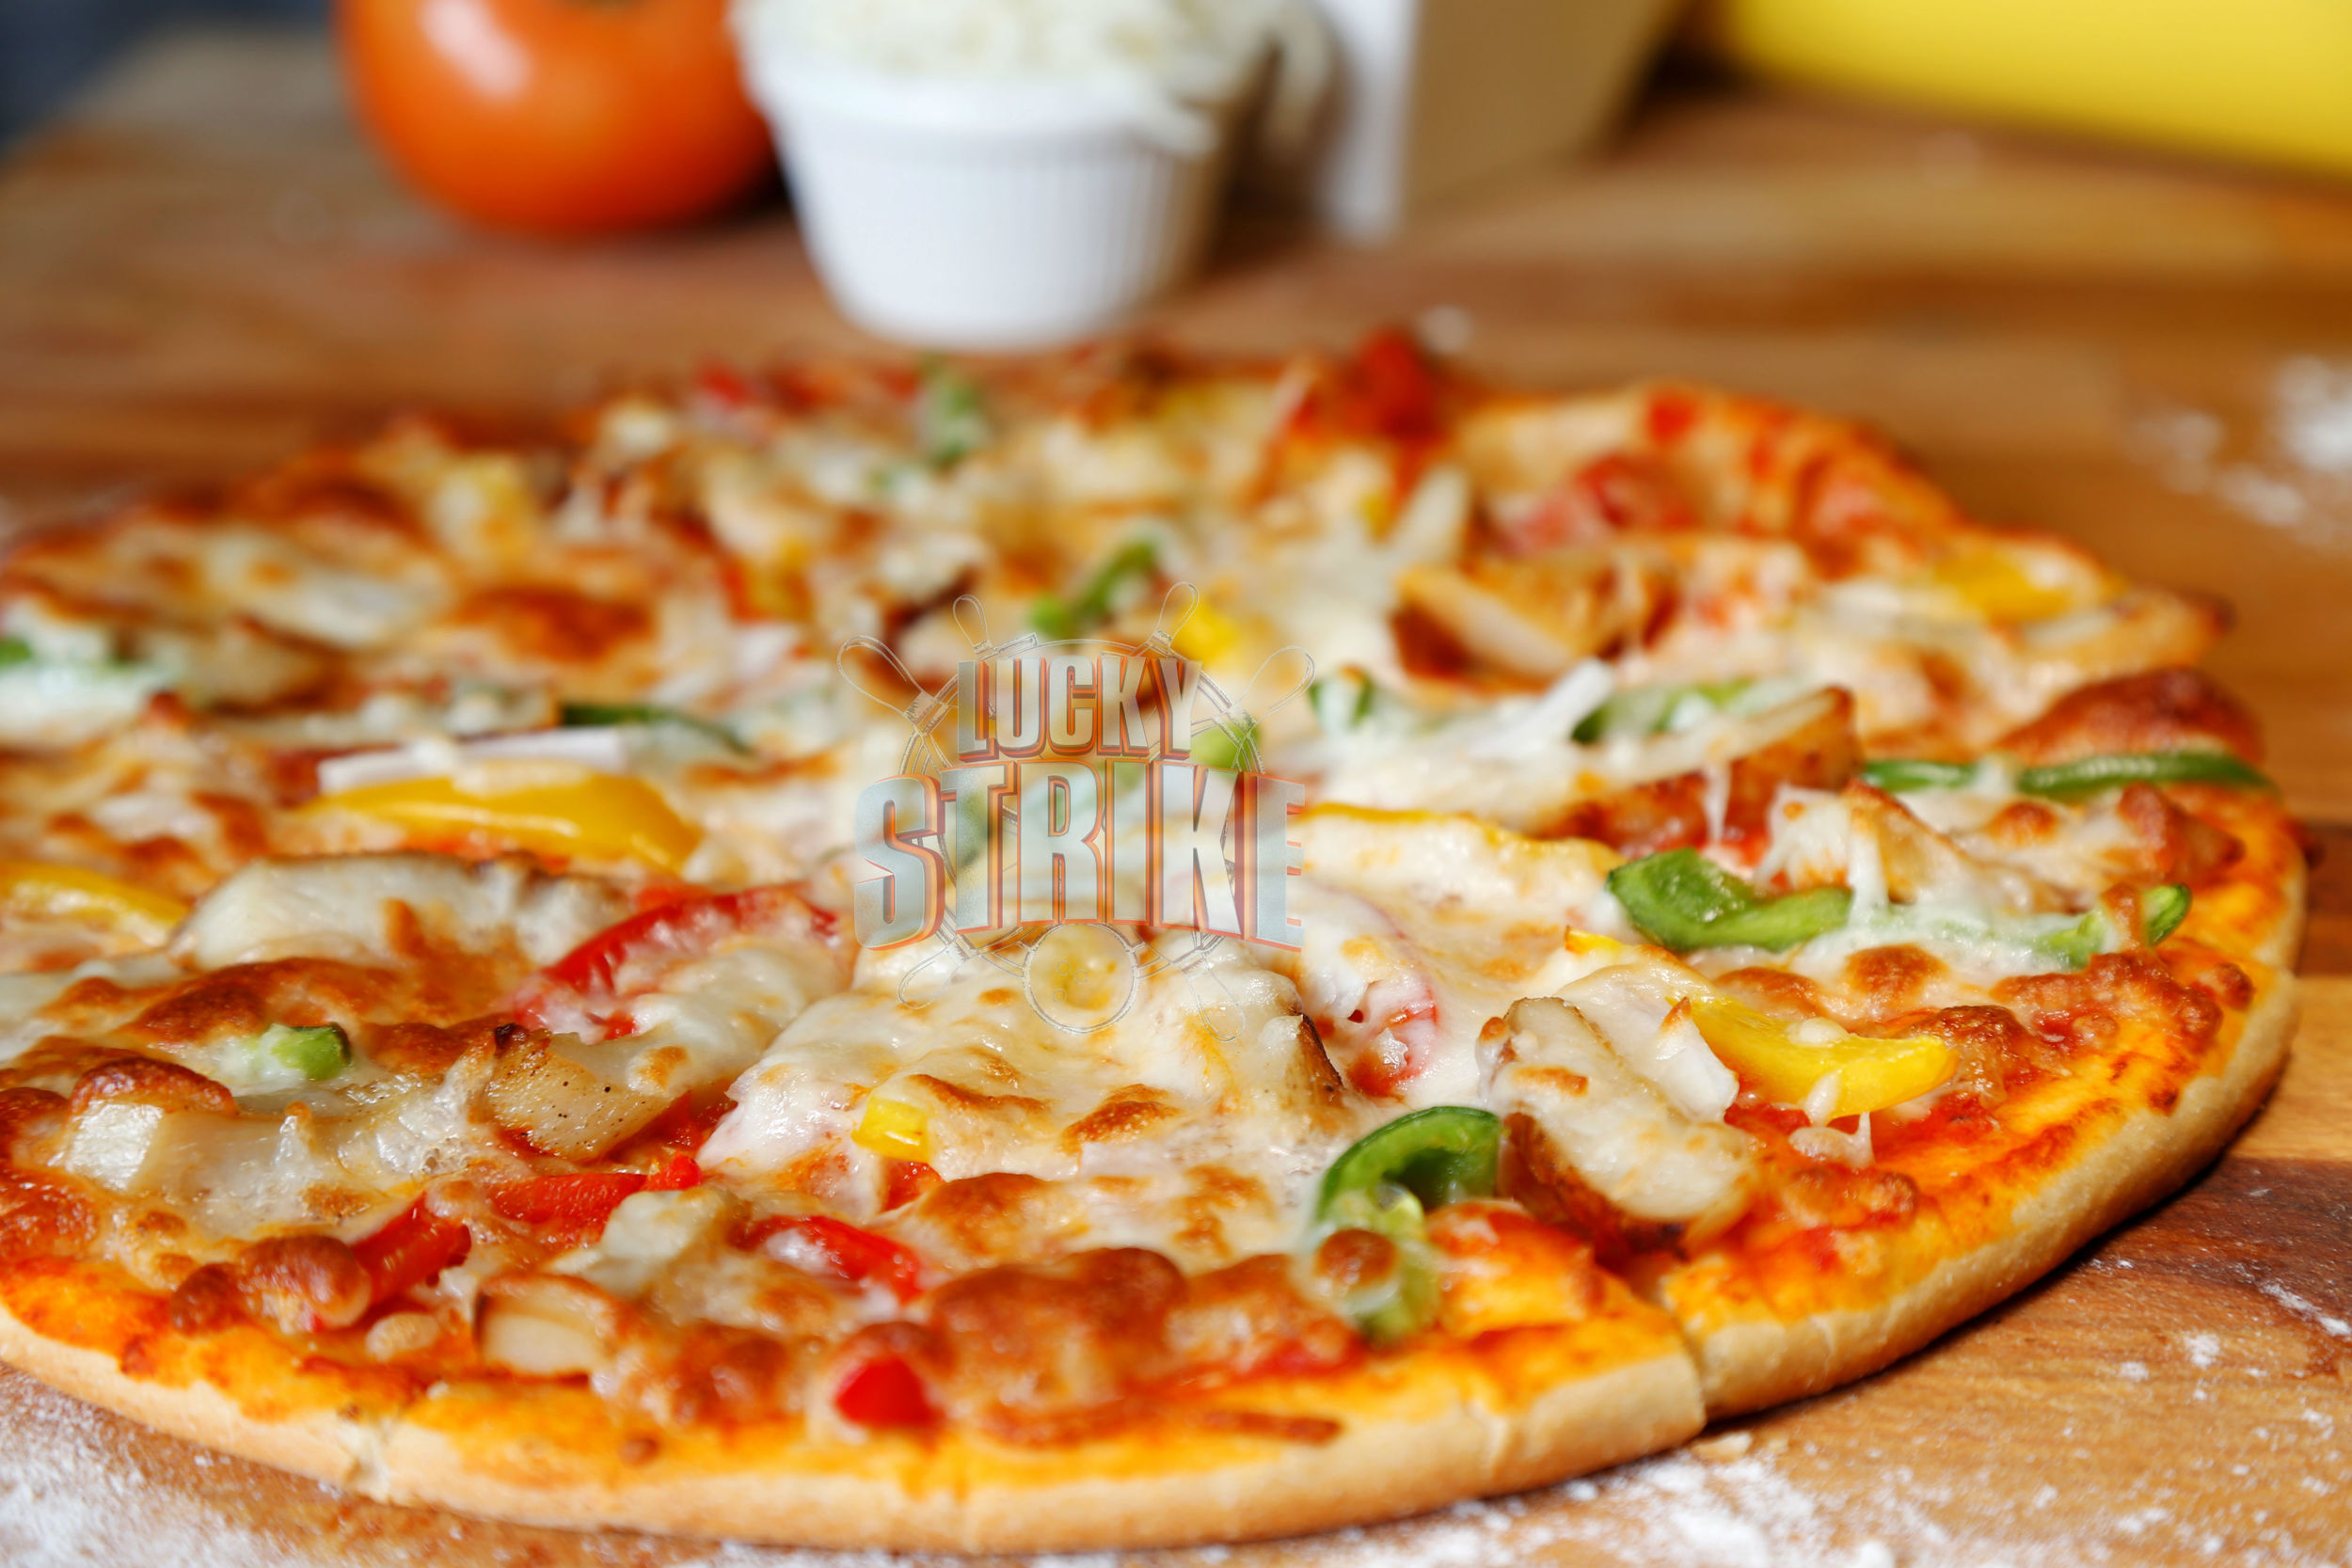 CHICKEN PIZZA                                                         38/49    Freshly homemade dough topped with grilled chicken & marinated with red, green, yellow capsicum, melted mozzarella cheese & Italian sauce